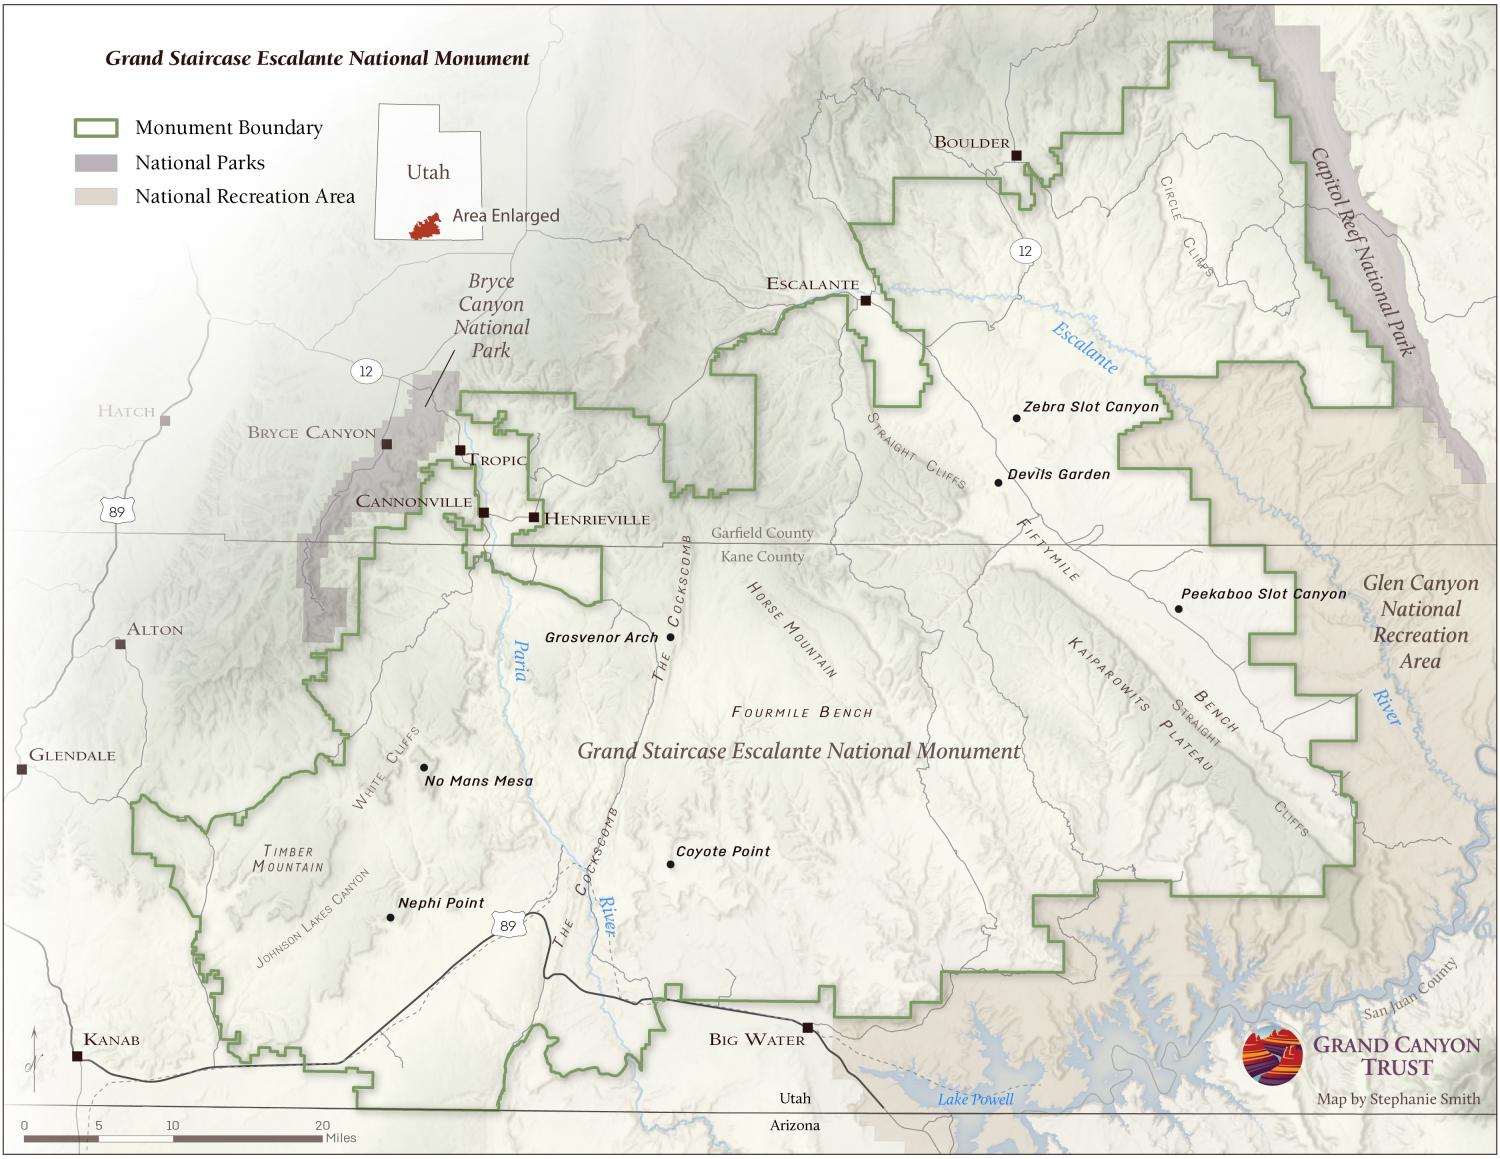 Grand Staircase-Escalante National Monument Map